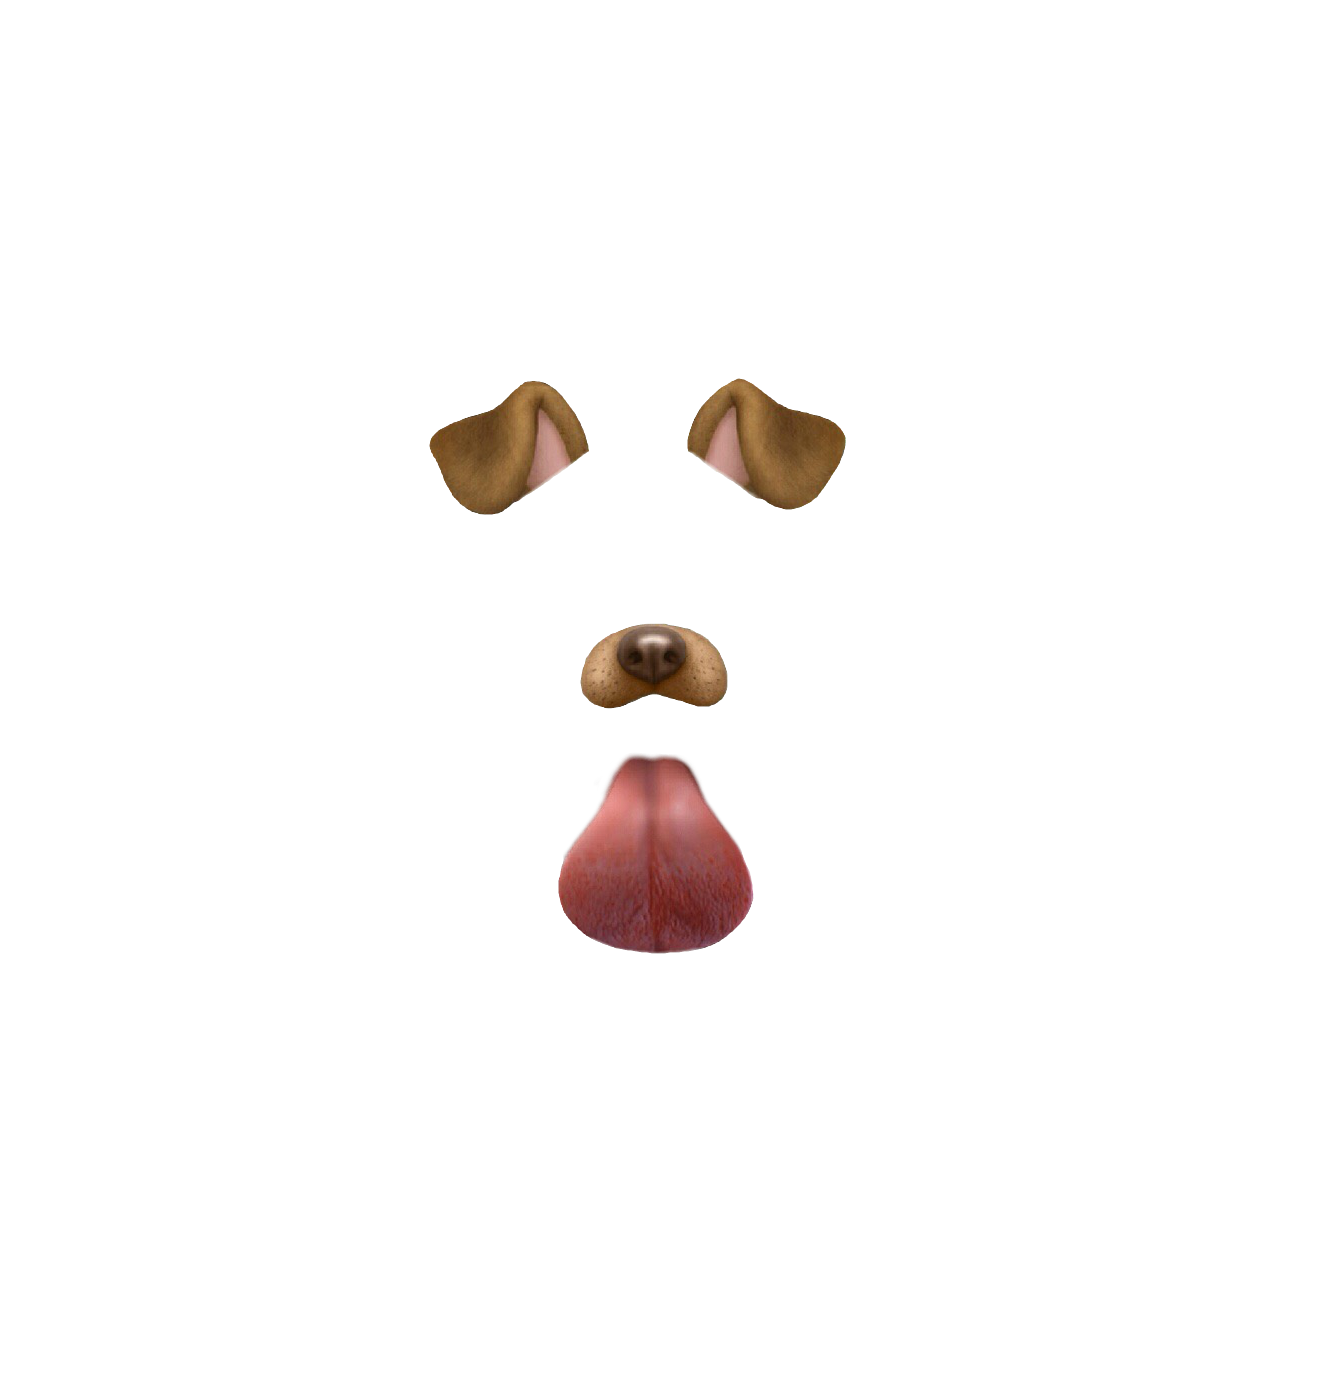 Doggy drawing filter. Dog png related keywords